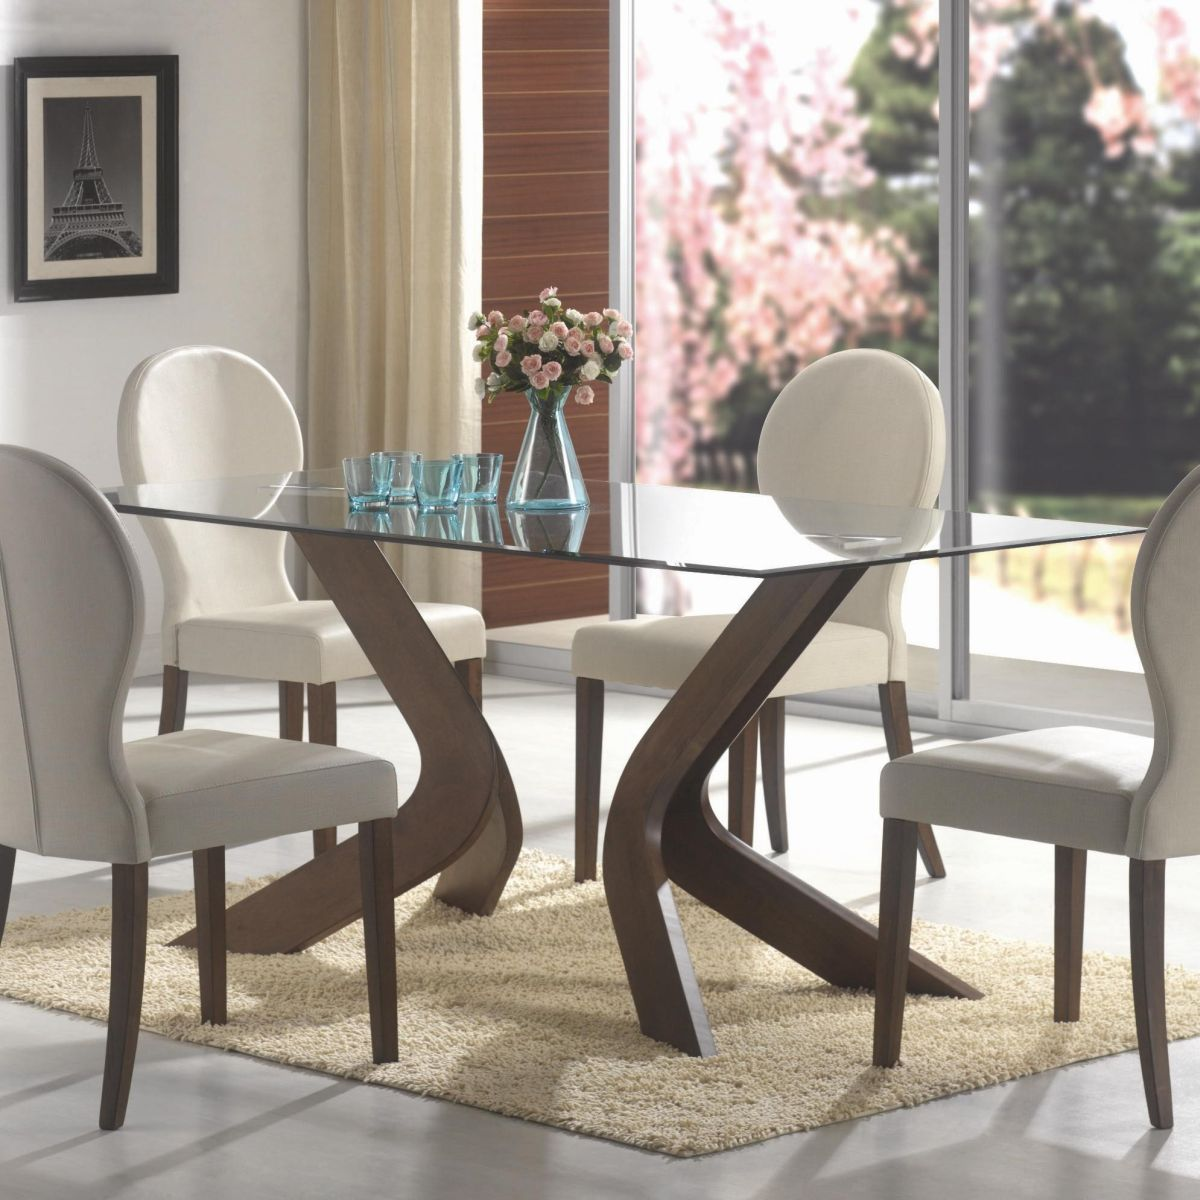 Chairs For Glass Dining Table 40 glass dining room tables to revamp with: from rectangle to square!